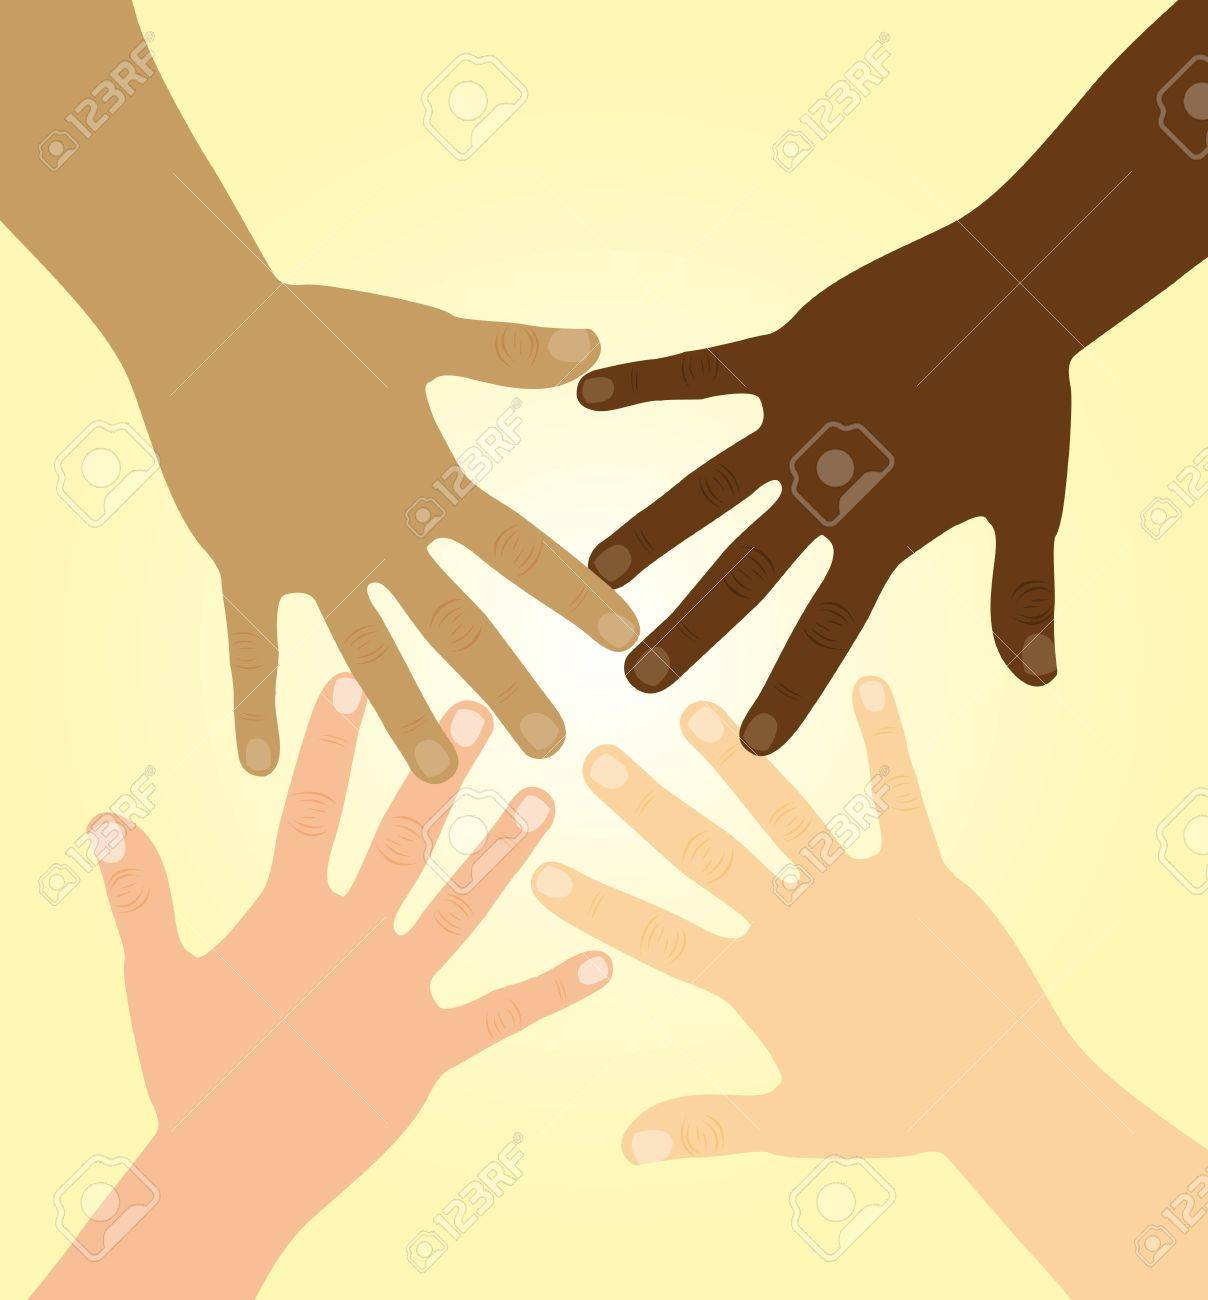 diversity hands over yellow background. vector illustration - 11618596